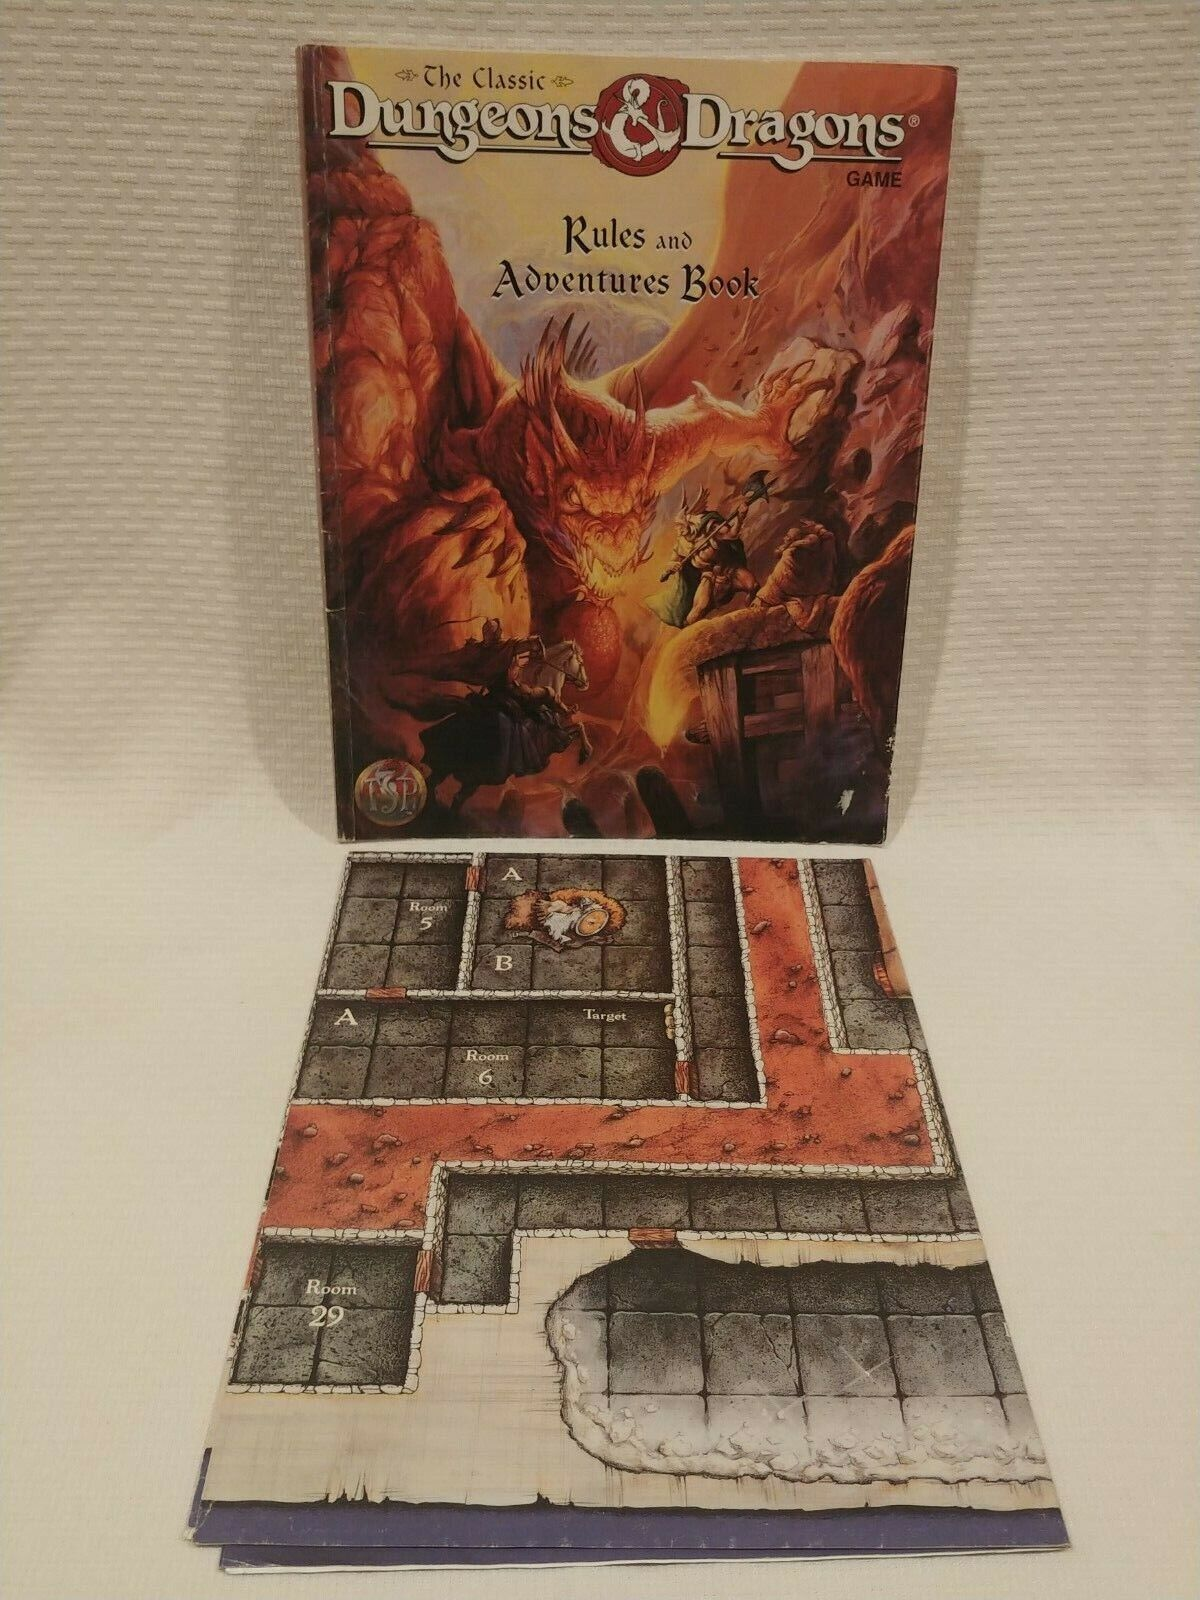 The Classic Dungeons & Dragons Game Rules and Adventures Book with Zanzer's Map